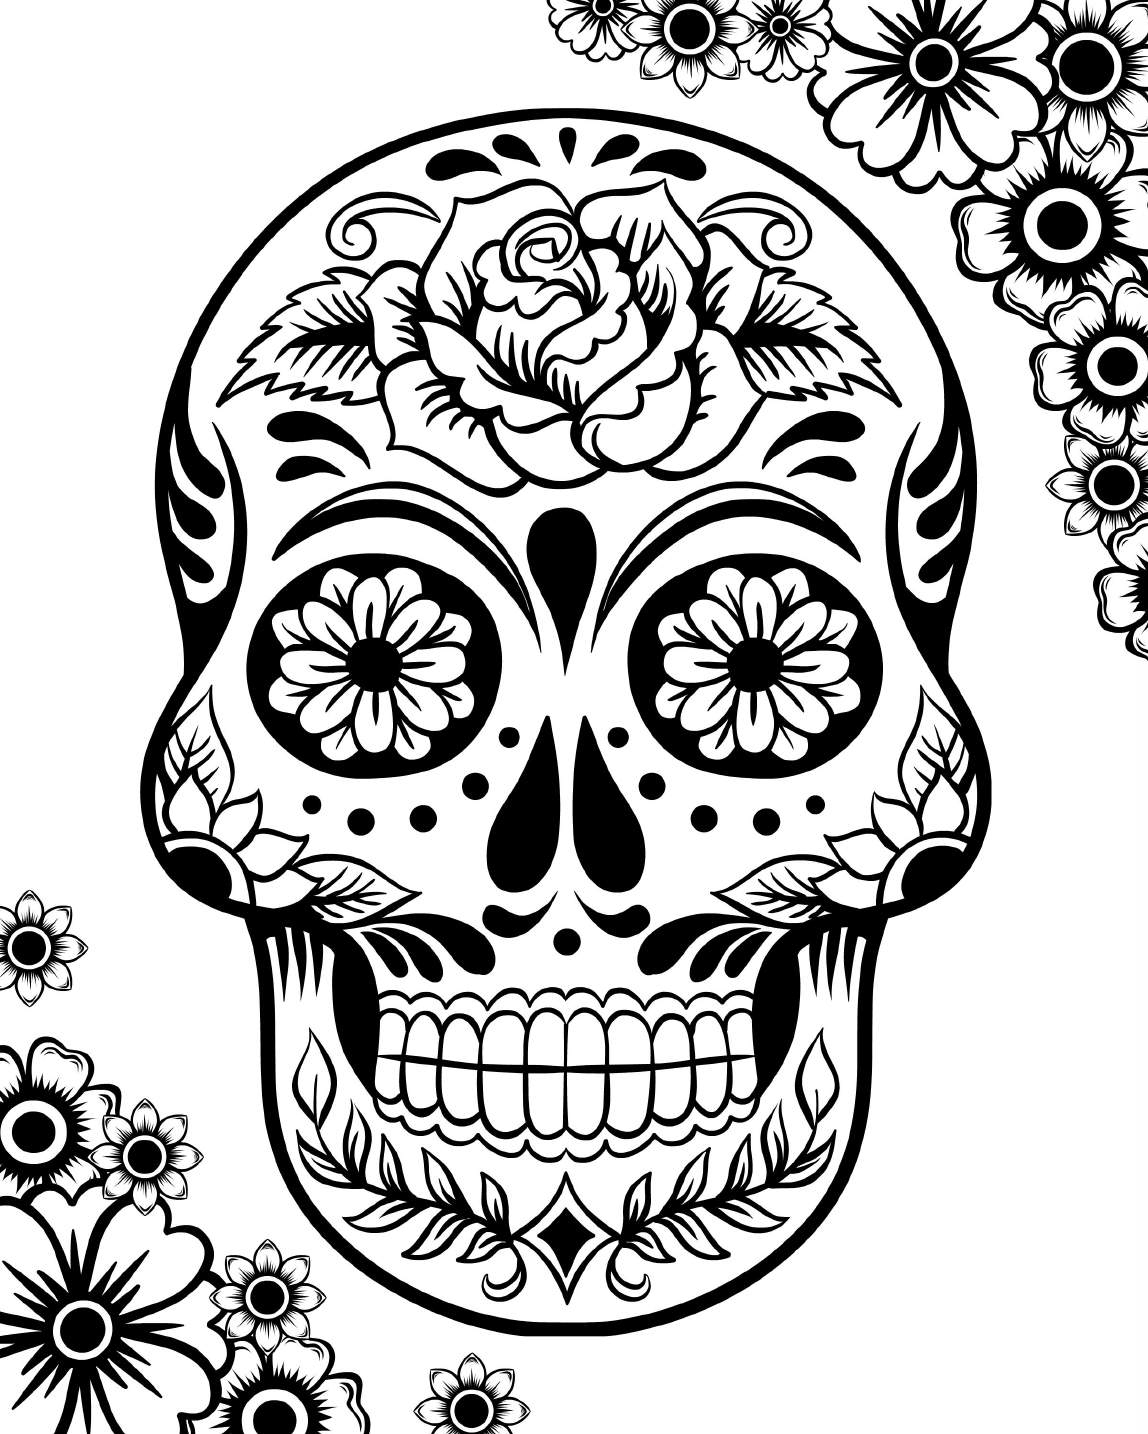 day of the dead printables day of the dead 2017 drawing tattoo makeup printables dead day the of